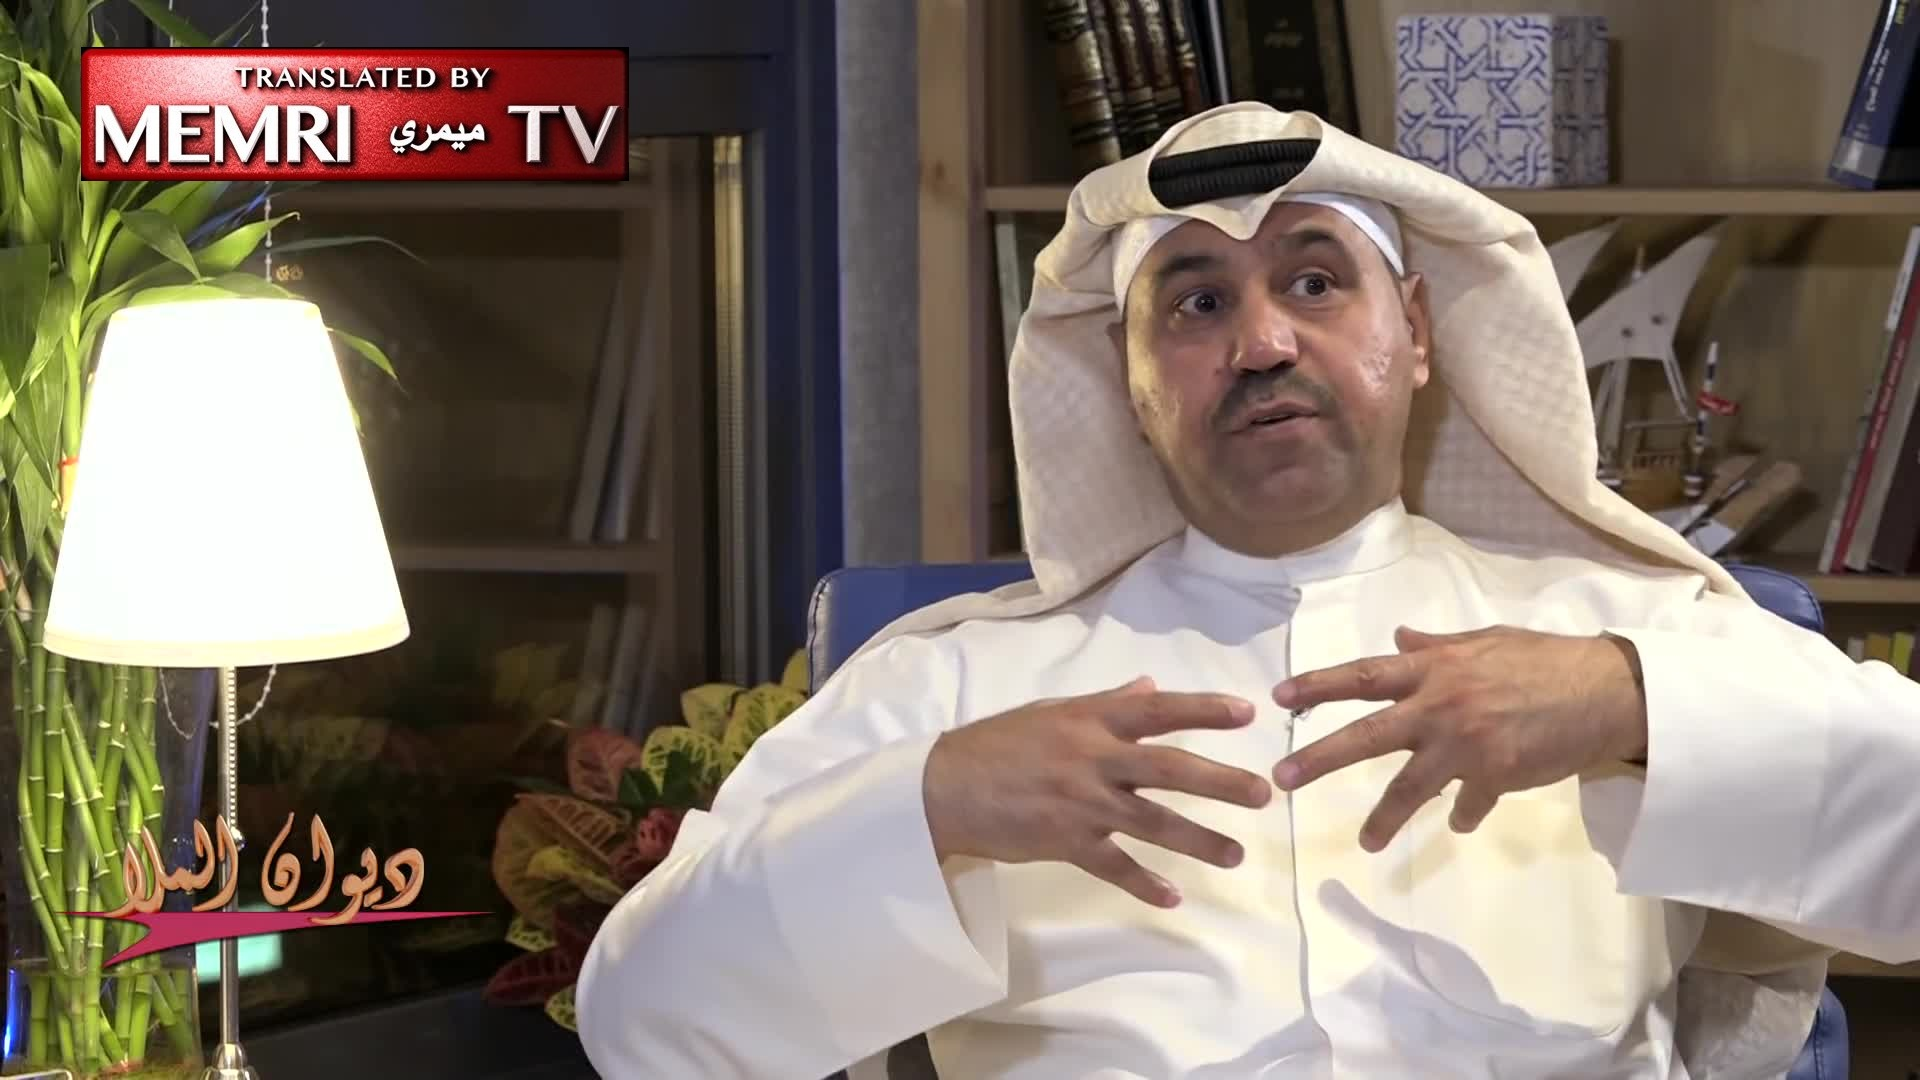 Kuwaiti Researcher Dr. Fahd Al-Shelaimi: The Muslim Brotherhood Is a Terrorist Organization; Hizbullah Is a Greater Threat than Israel